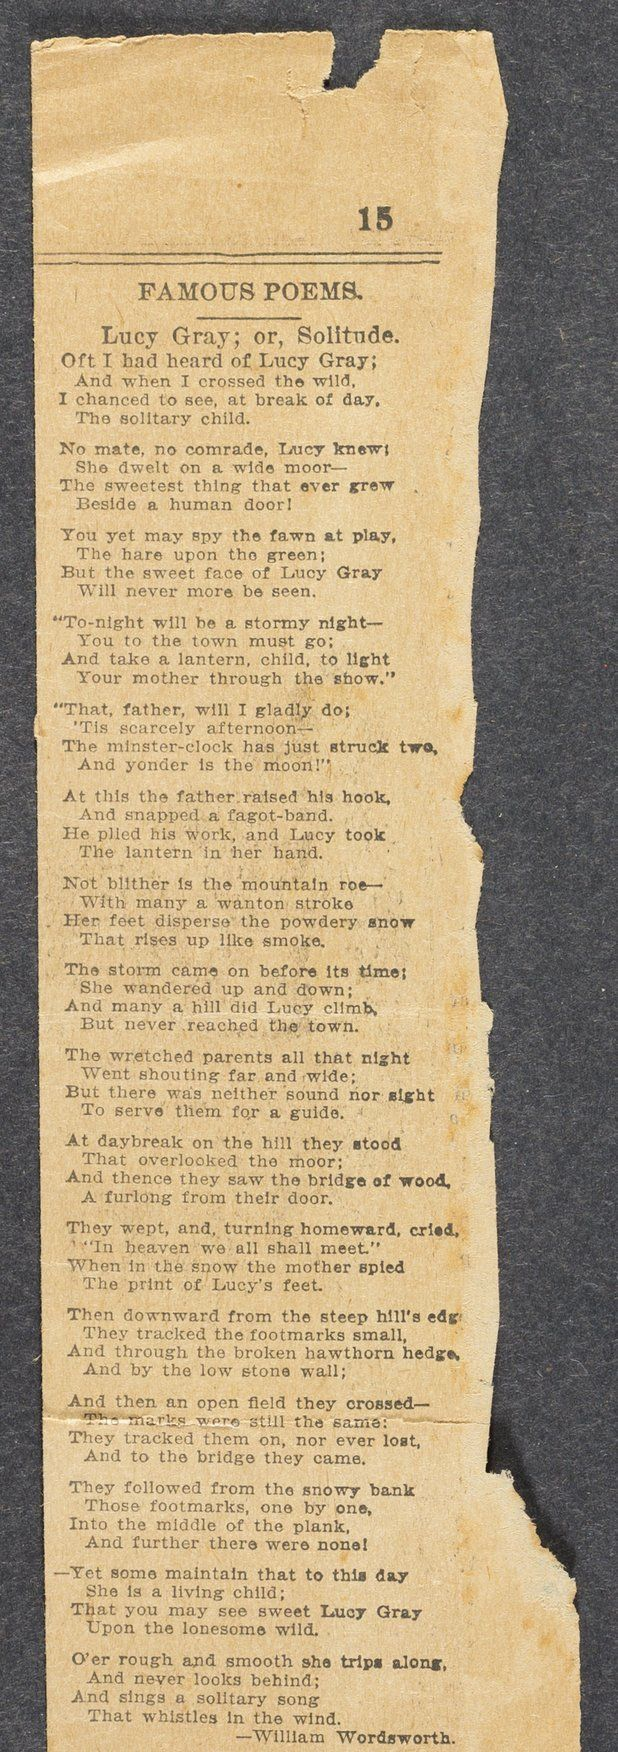 william wordsworth lucy poems It is barely an exaggeration to say that all lyric poetry is about love, death, or both  so i'm not sure what you're looking for: poems about the d.